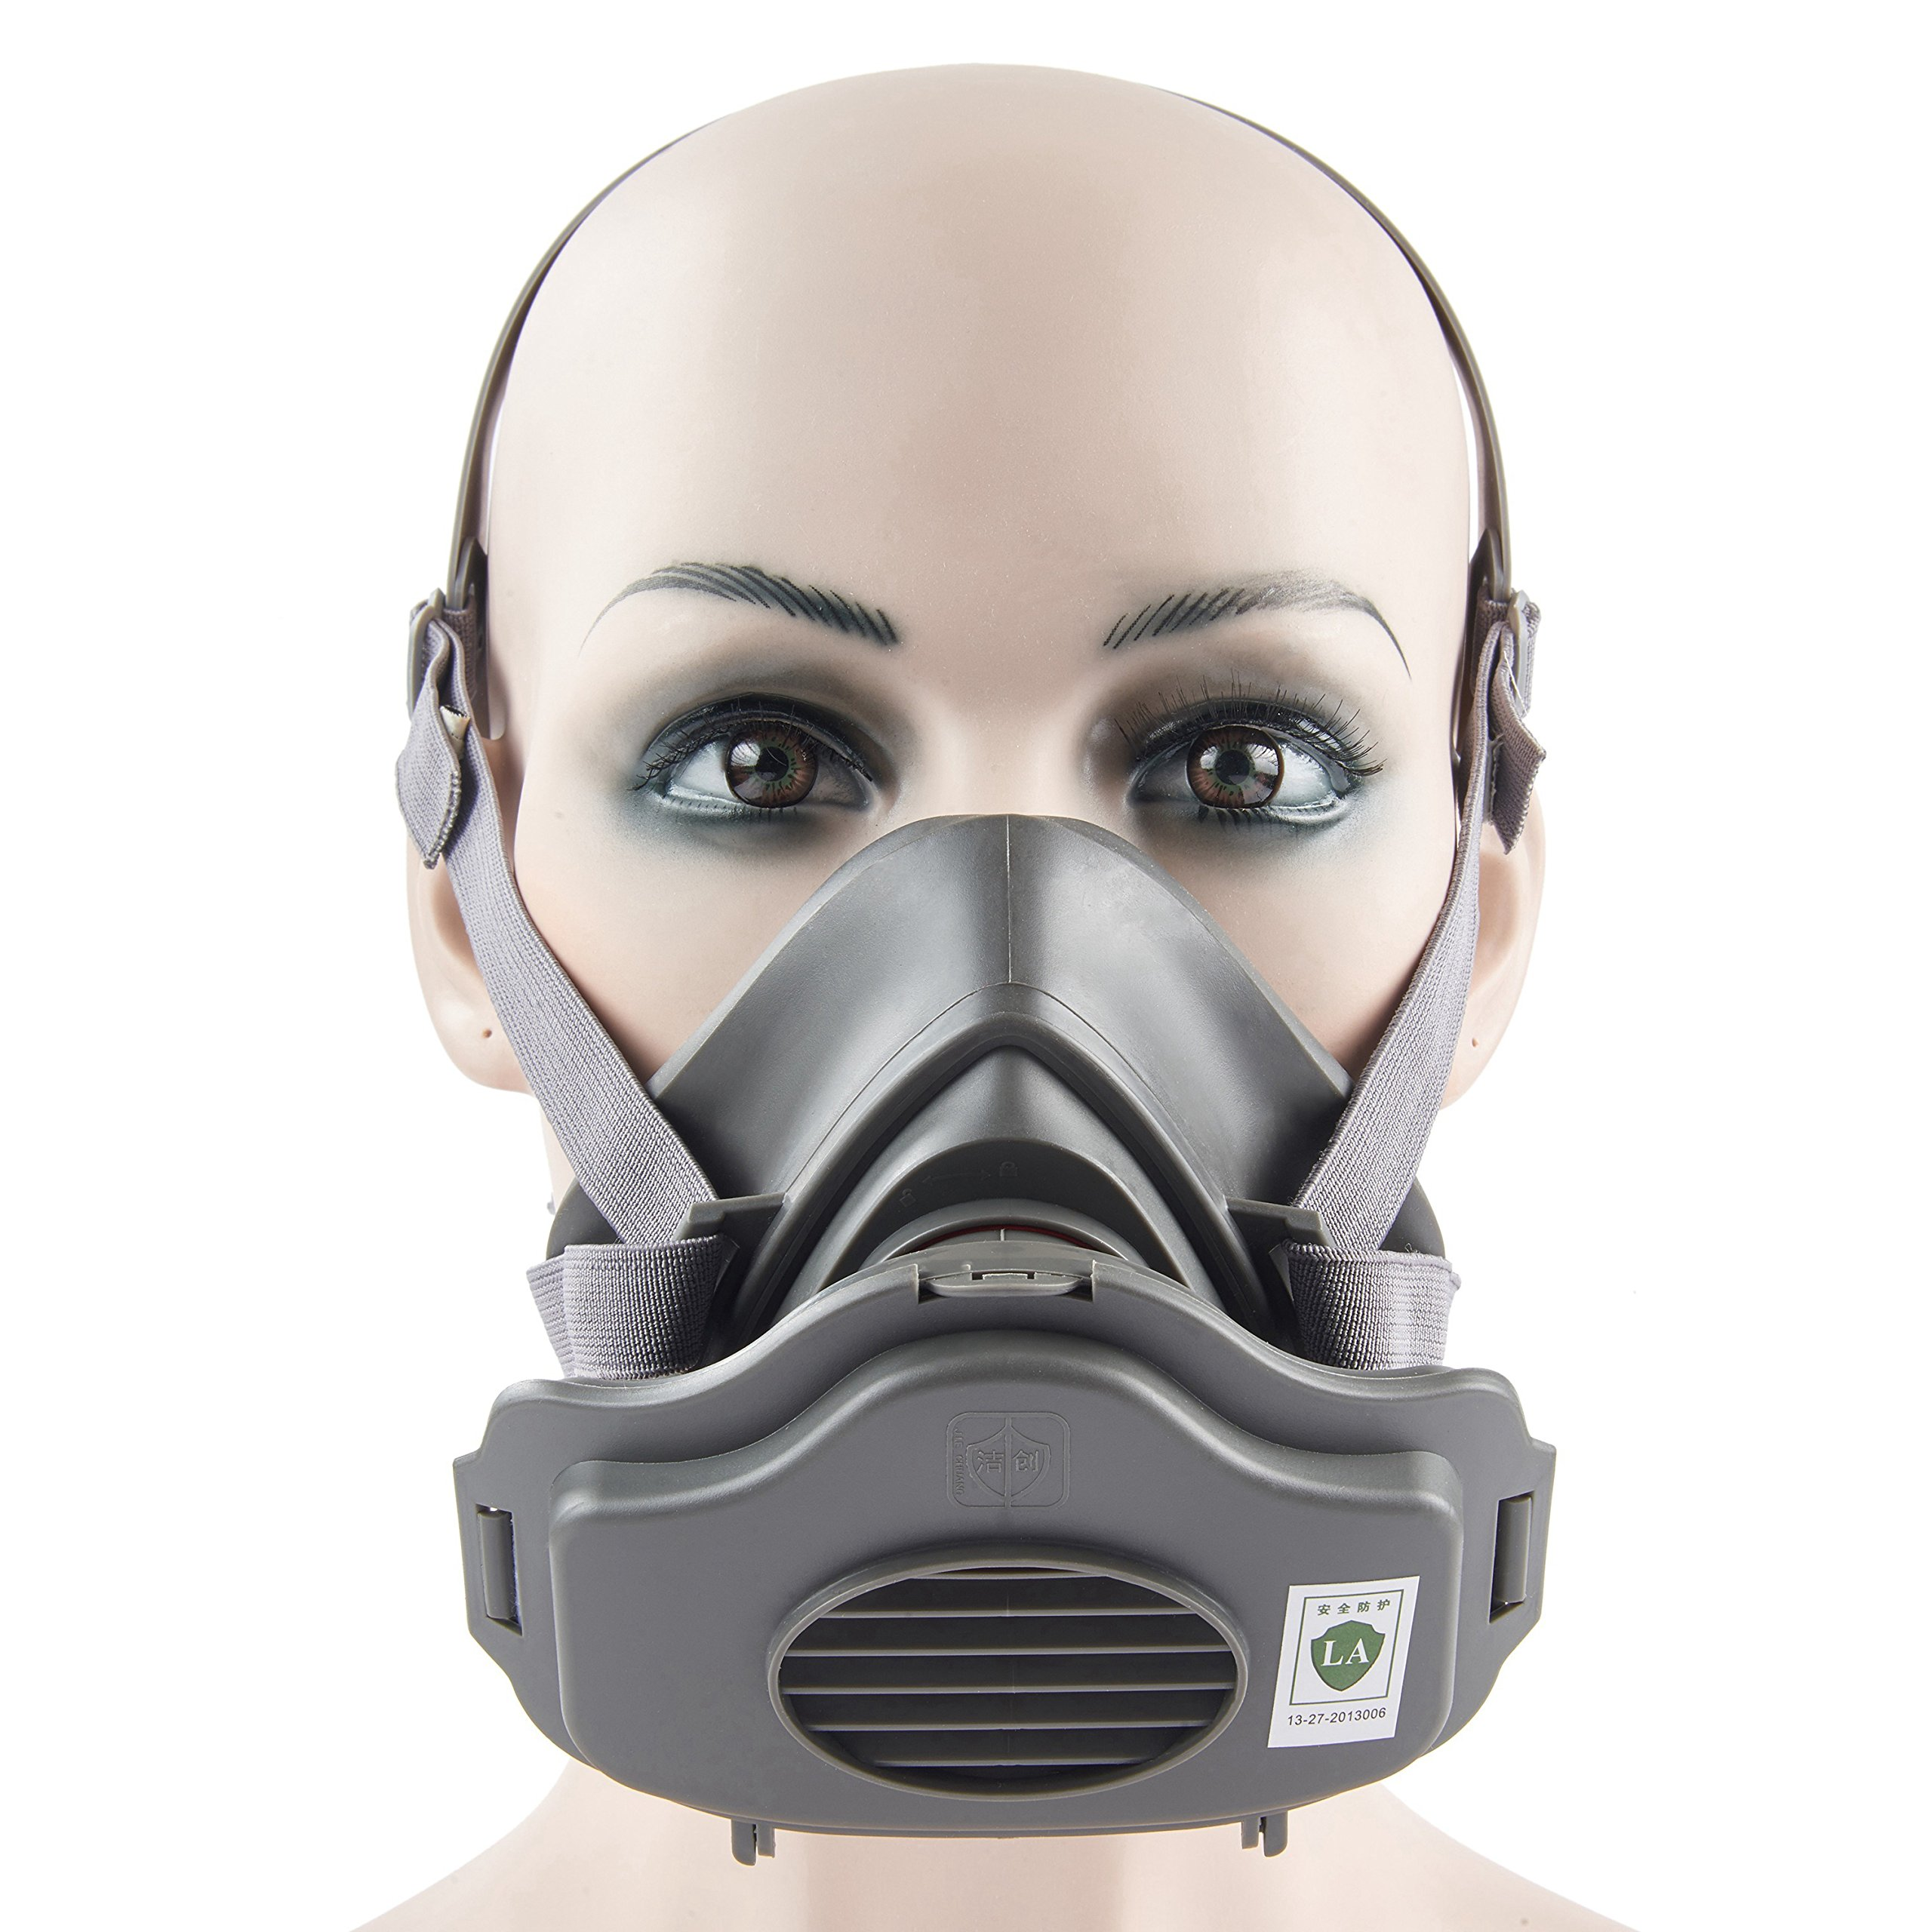 Joyutoy Respirator Anti -Dust Industrial Mask PM2.5 Half Facepiece Reusable Respirator Paint Breathing MaskProtection Filter